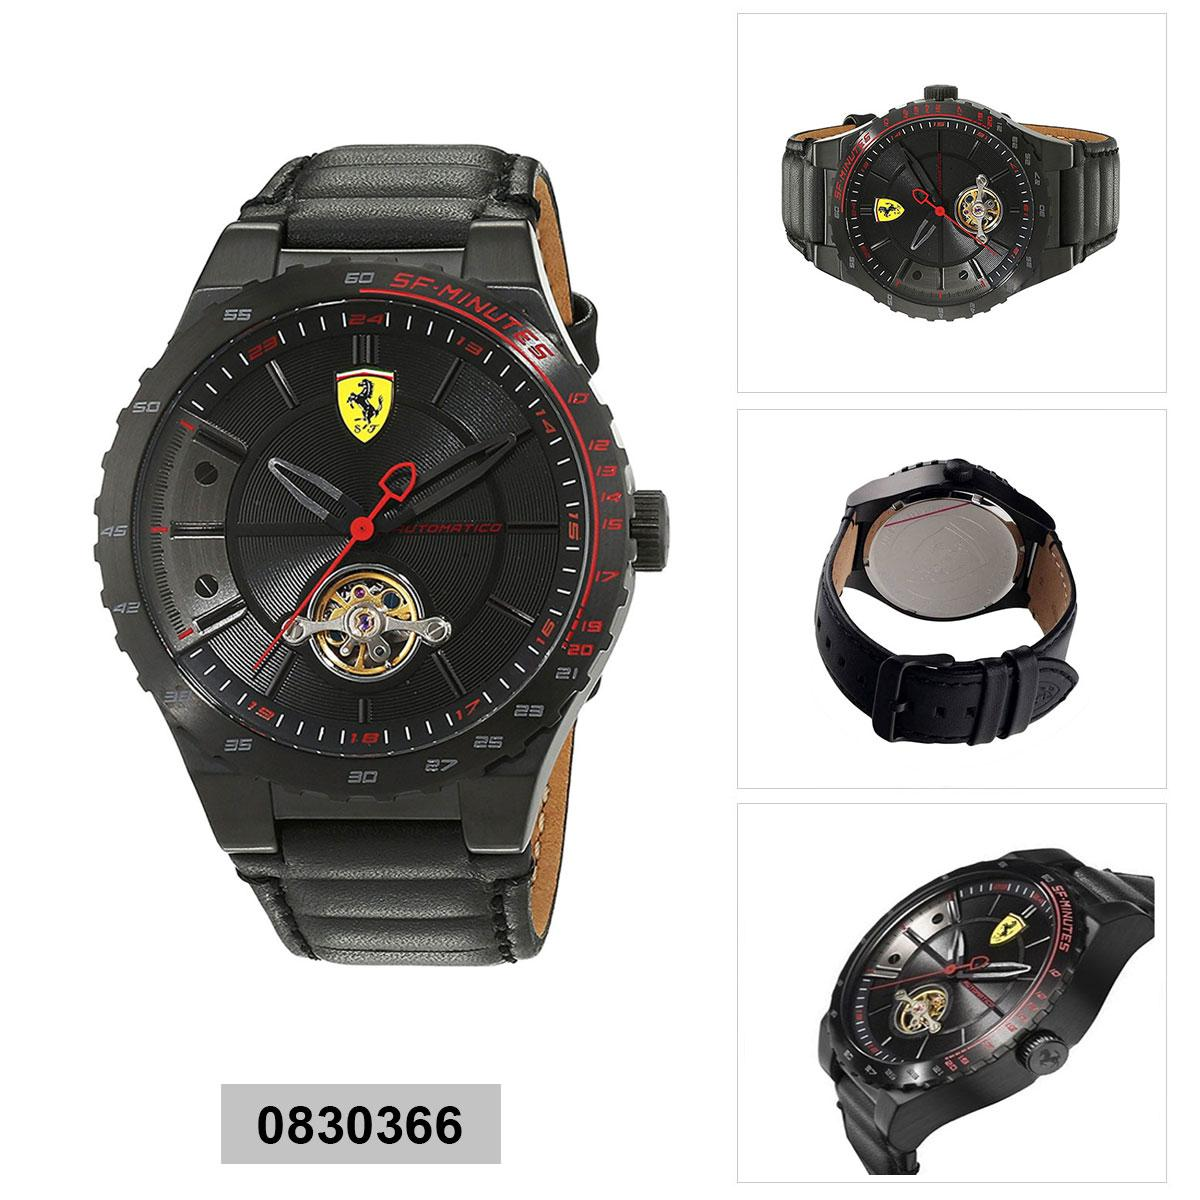 Casual Men Watches Singapore Online Lazada Jam Tangan Fossil Fs4812 Grant Chronograph Black Dial Leather Mens Watch Ferrari Speciale Evo Stainless Steel Case Strap 0830366